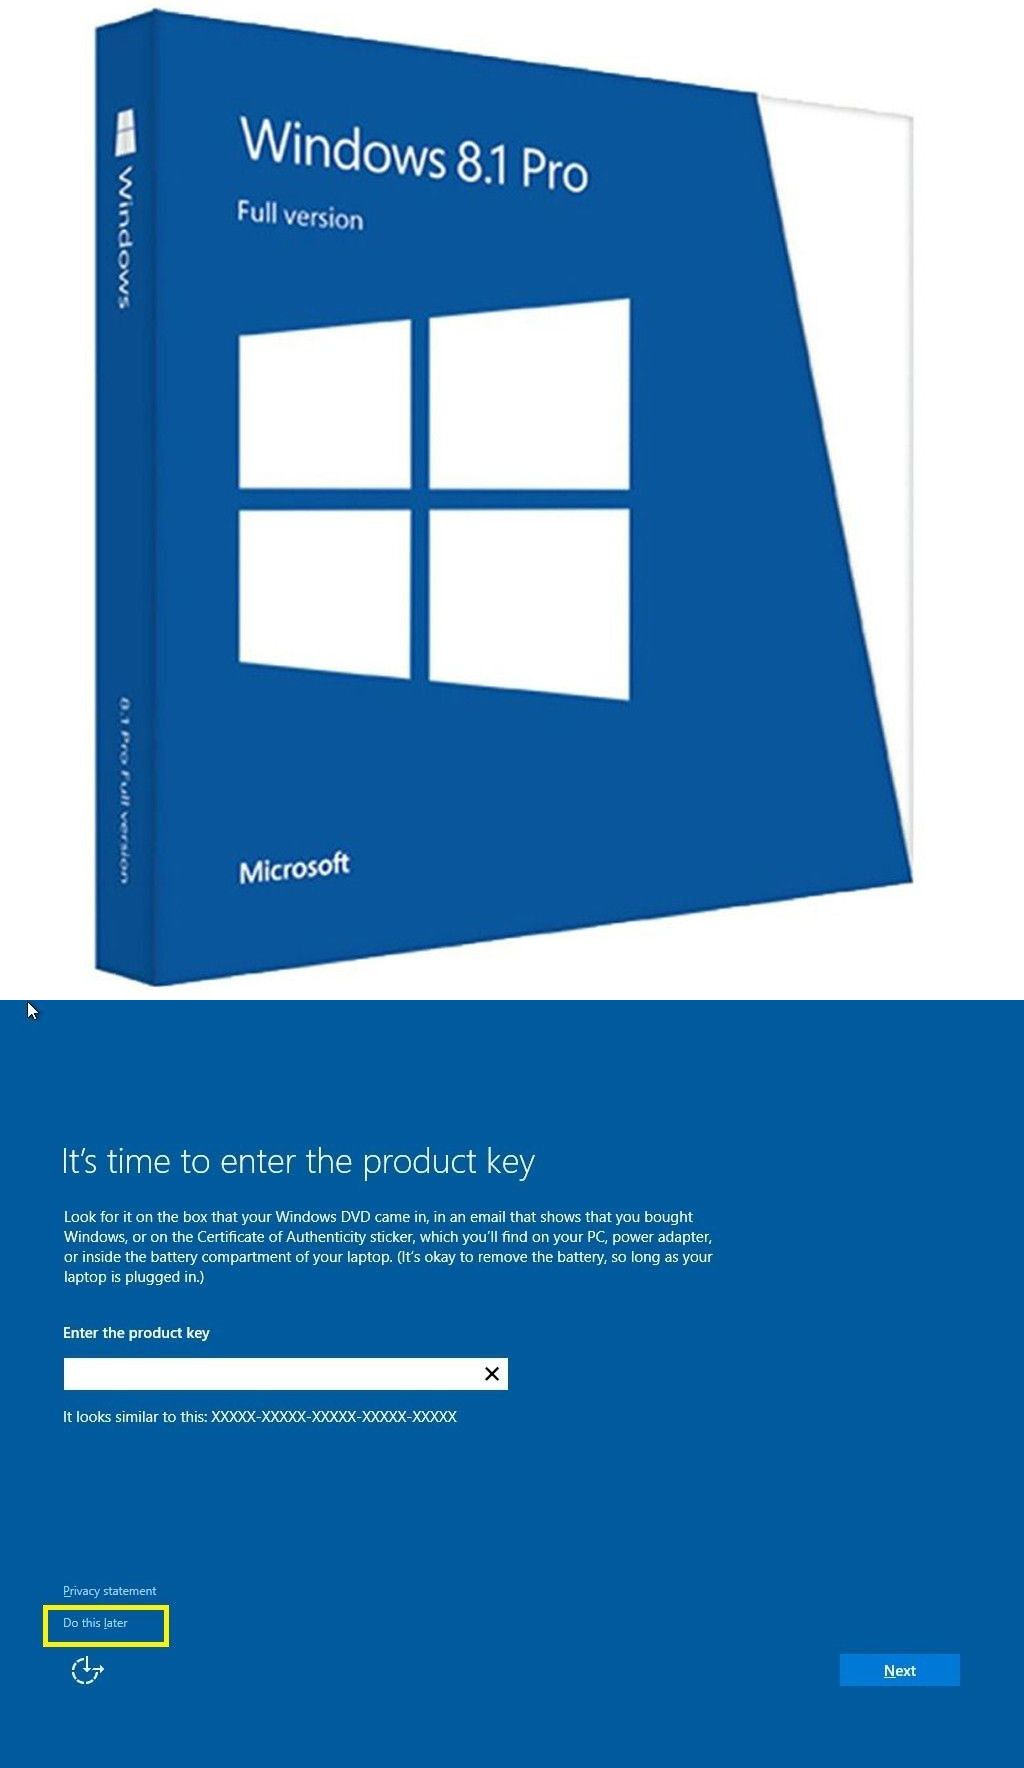 windows 8.1 pro 64 bit product key for activation